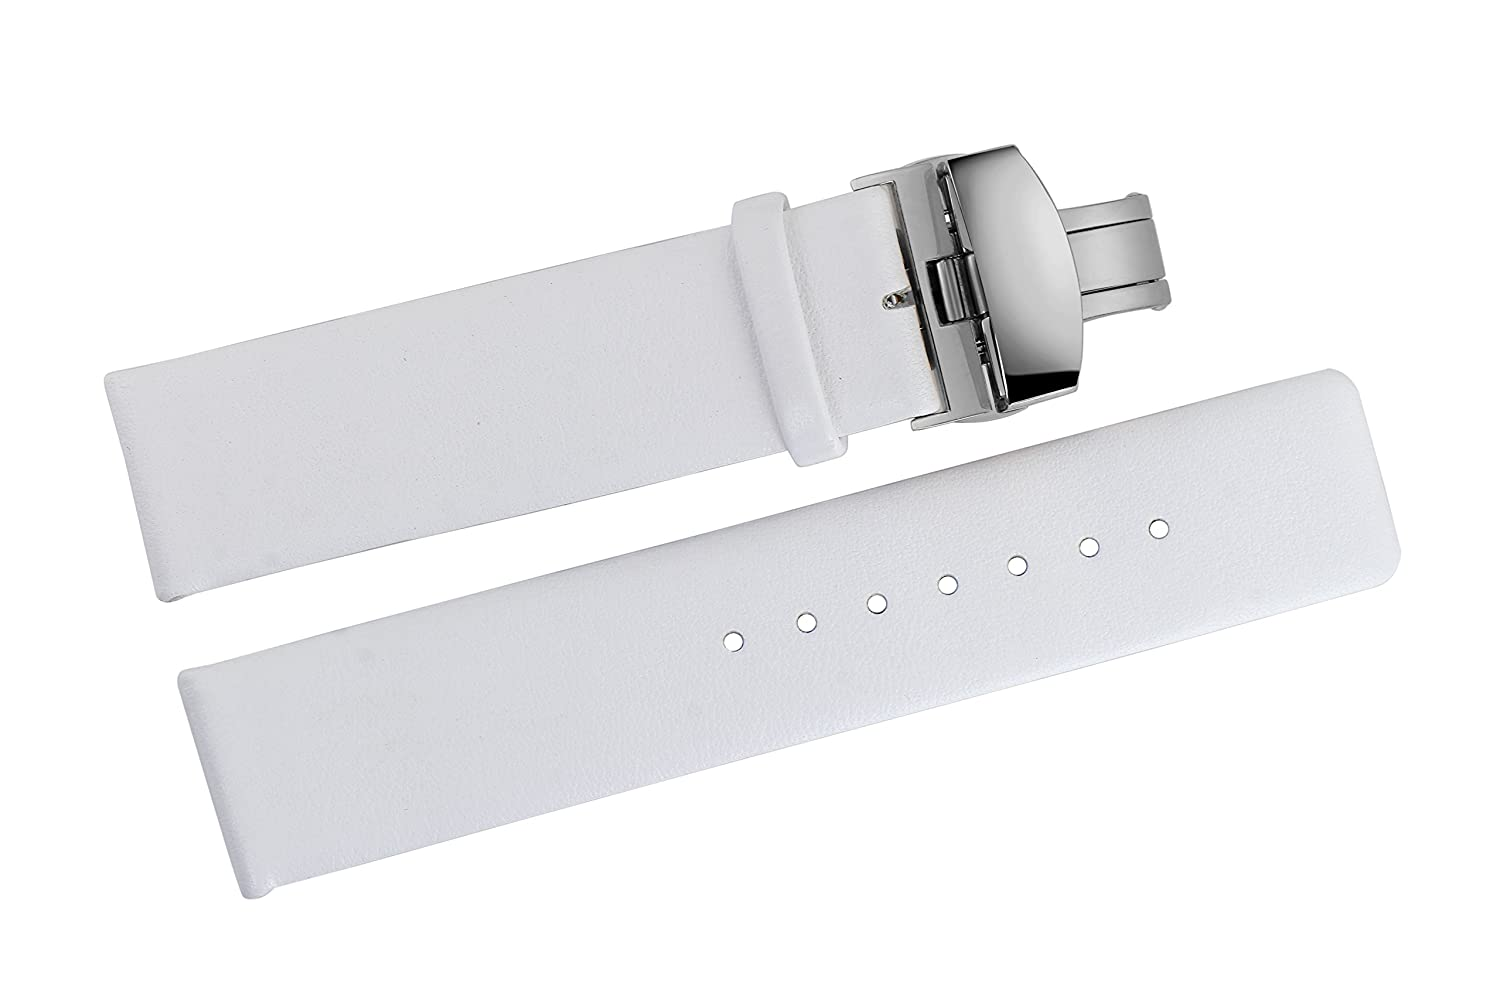 8a414949d8b9 18mm Luxury White Matt Leather Watch Bands Smooth Soft Cowhide without Pattern  with Butterfly Clasp Buckle